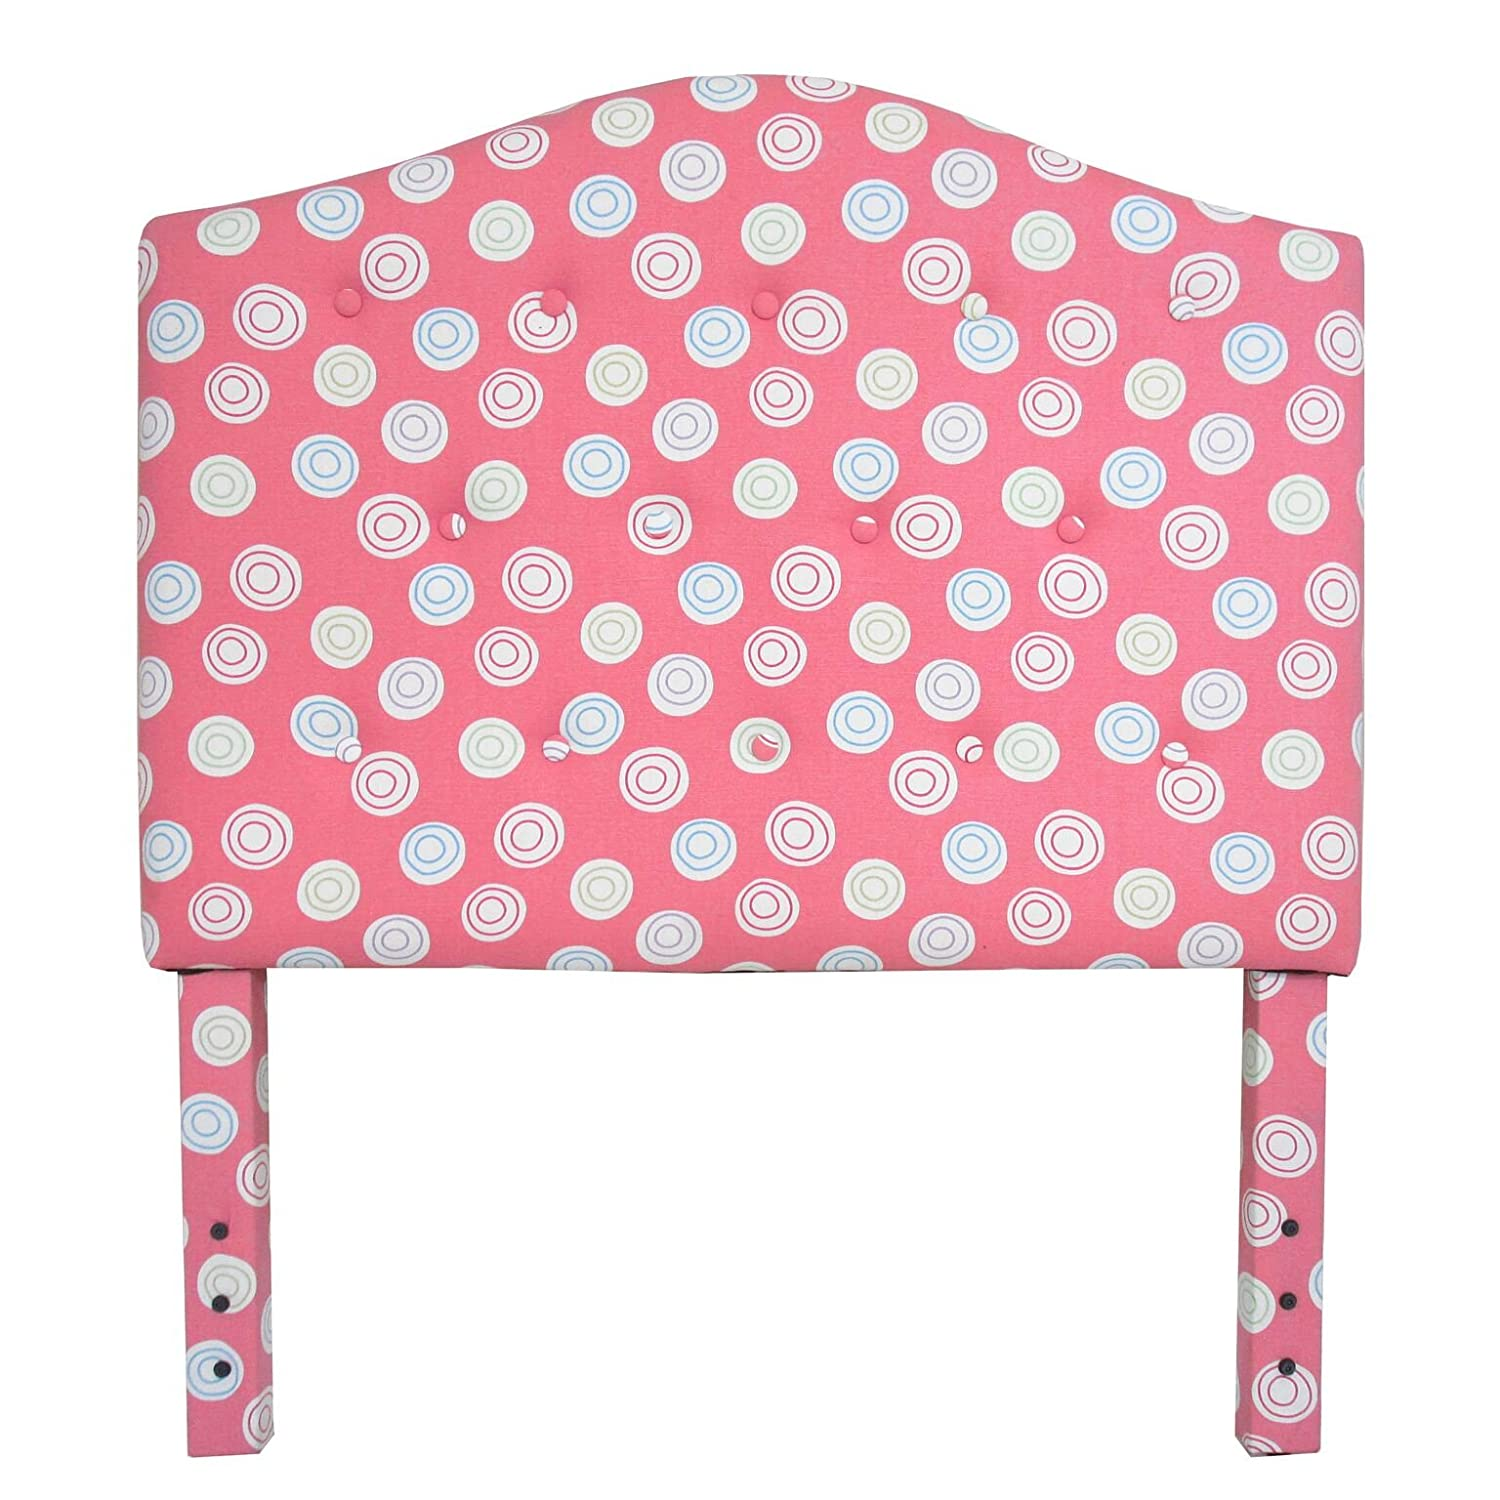 Amazon.com: Kinfine Youth Upholstered Twin Arched Headboard, Tufted Swirls  on Pink: Kitchen & Dining - Amazon.com: Kinfine Youth Upholstered Twin Arched Headboard